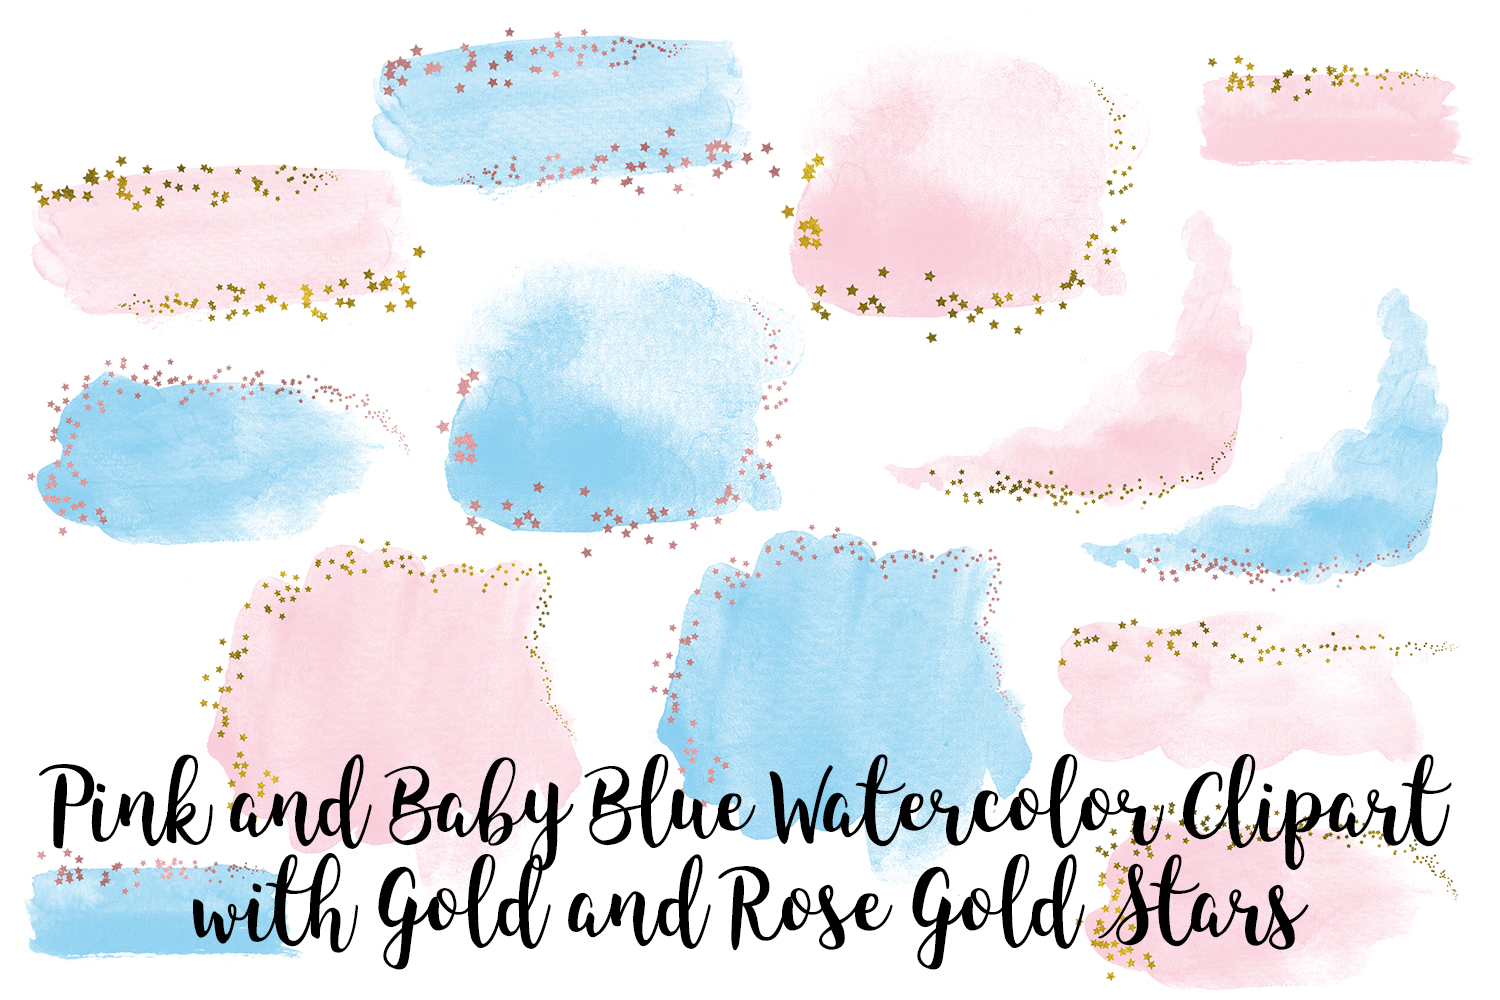 Pink and Baby Blue Watercolor Clip Art, Gold and Rose Gold example image 5